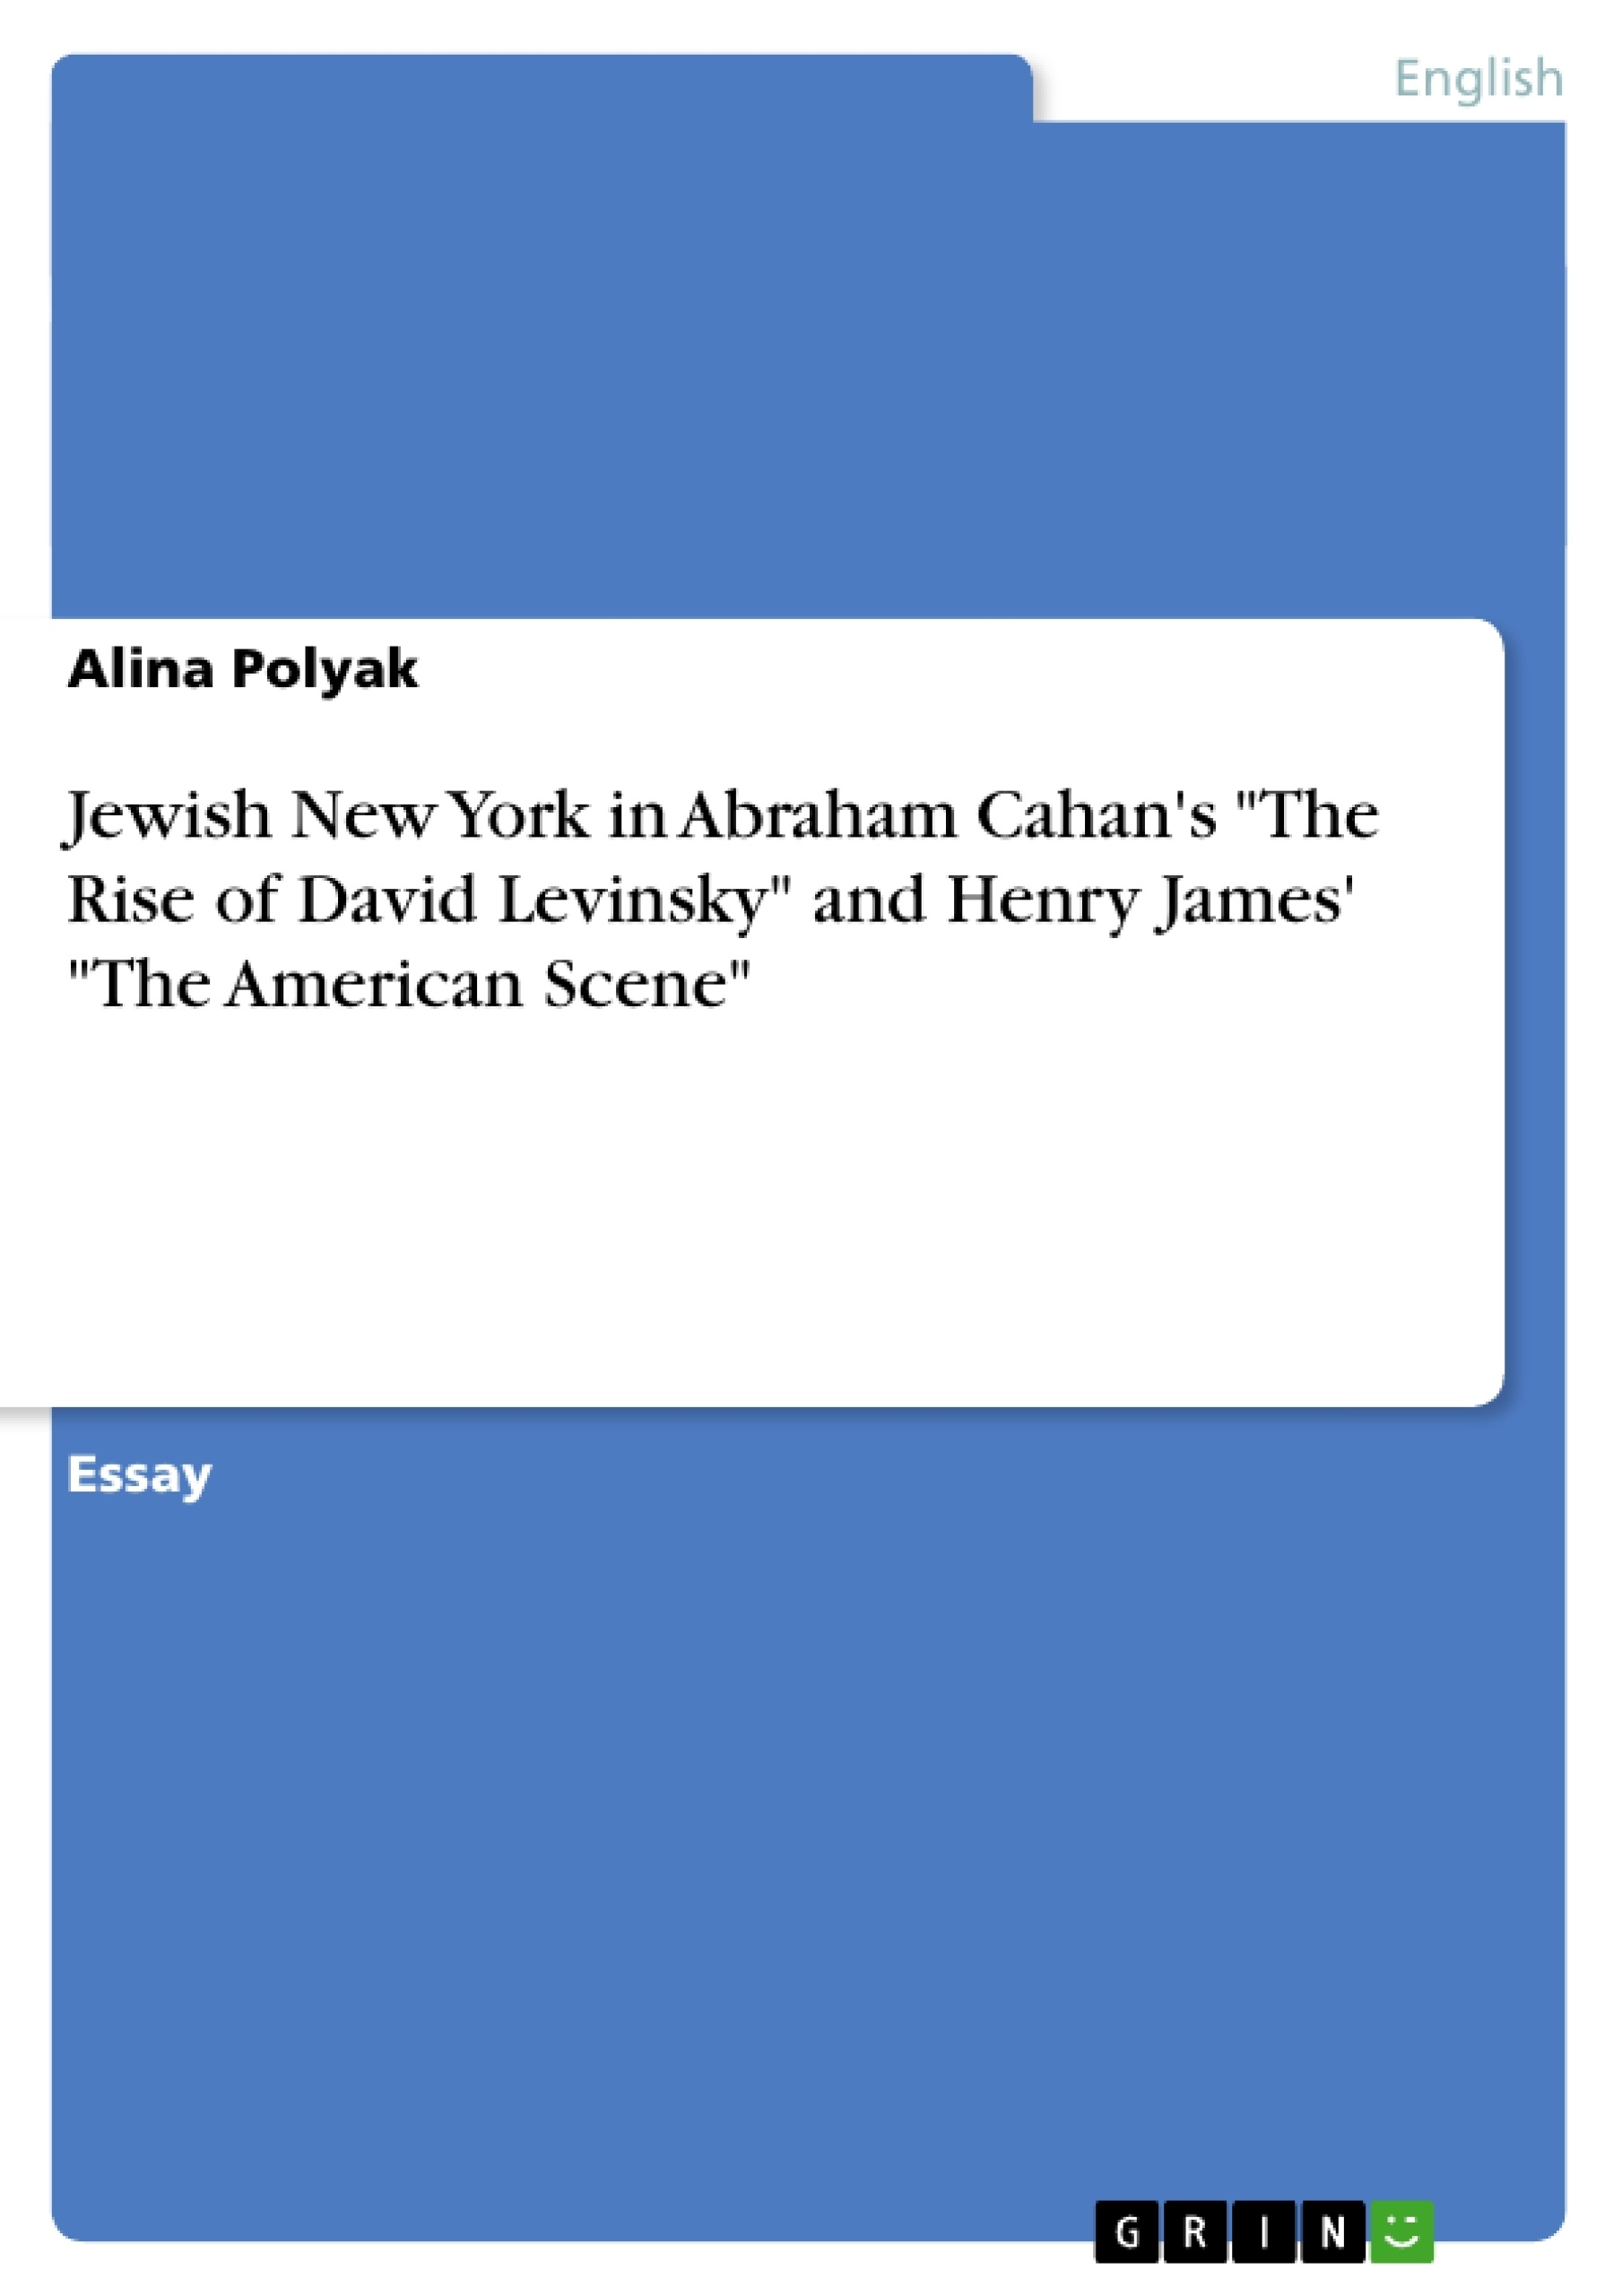 judaism essay jewish new york in abraham cahan s the rise of david  jewish new york in abraham cahan s the rise of david levinsky jewish new york in